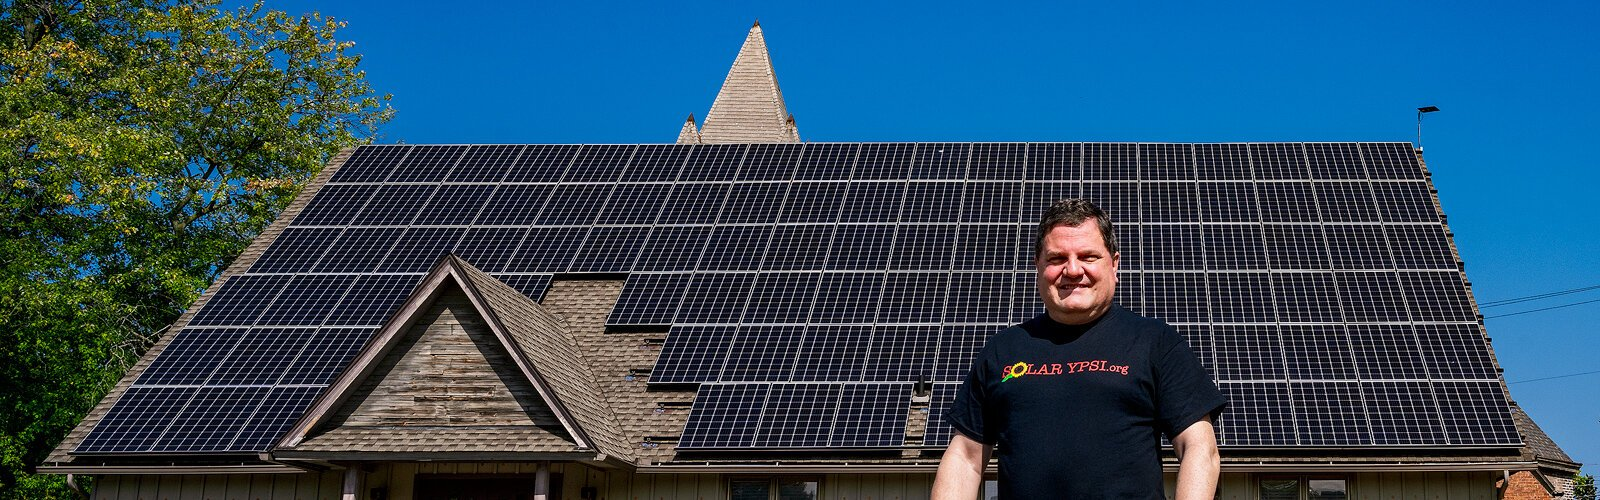 Steve Pierce stands in front of the solar roof at The YPSI.